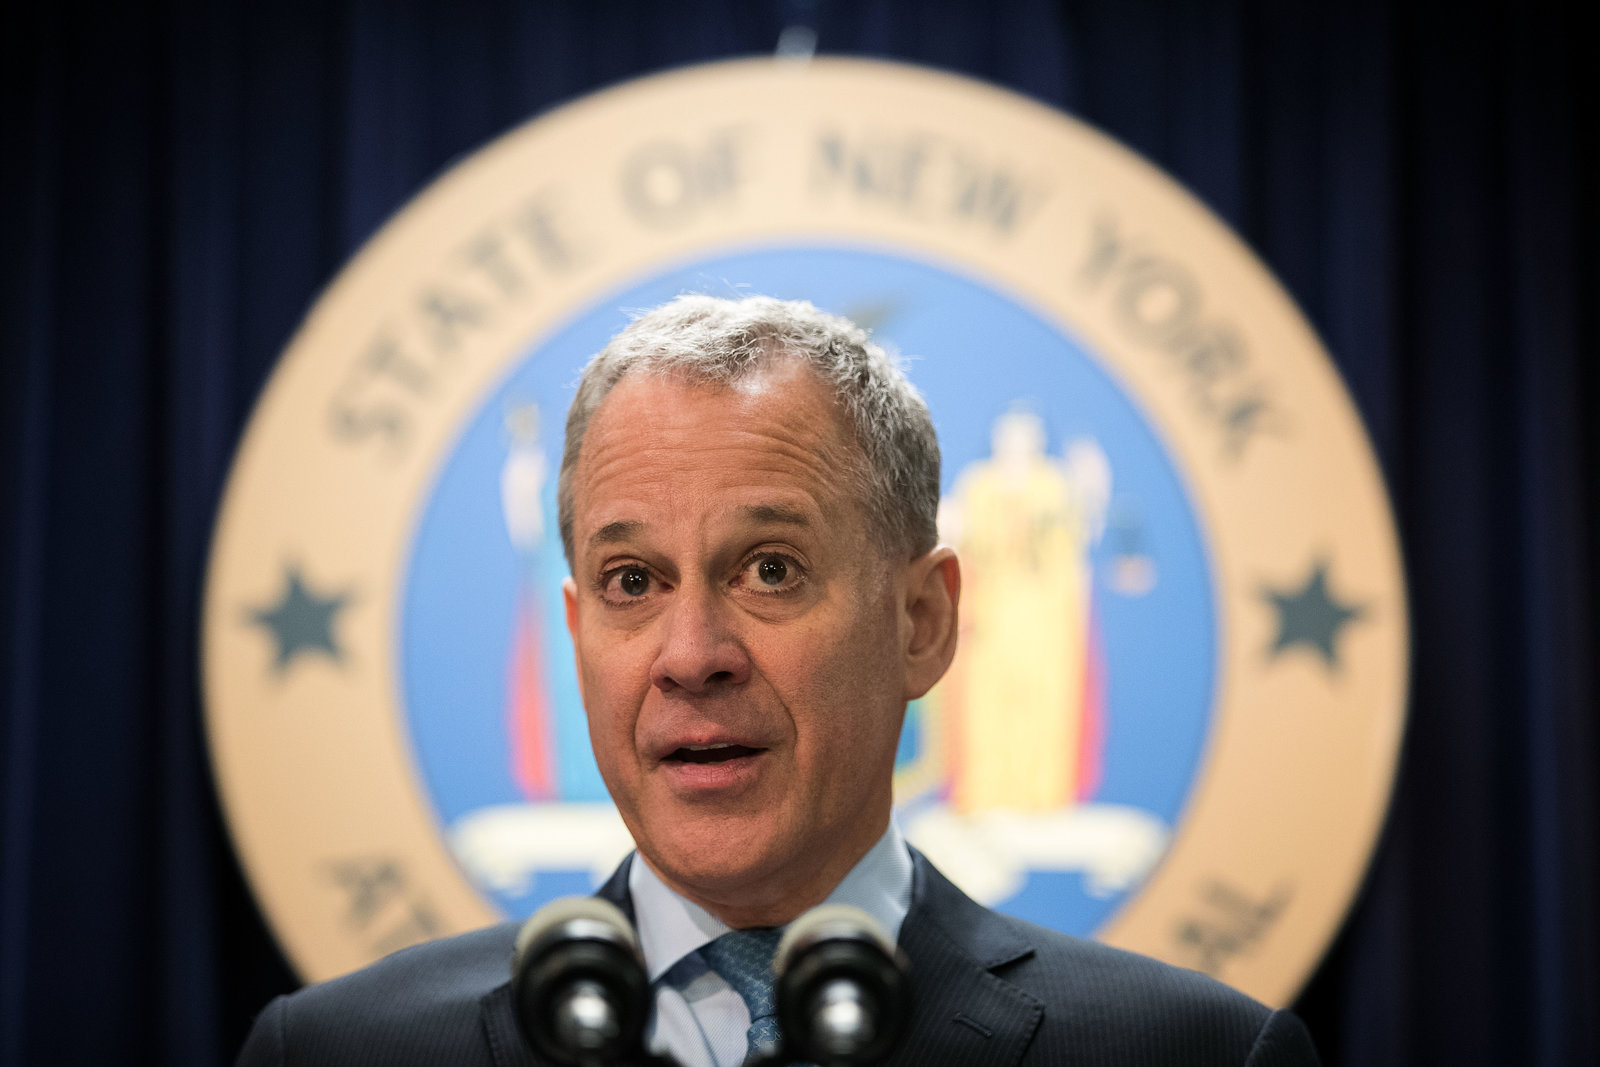 New York Attorney General Eric Schneiderman is investigating Exxon for potential climate fraud